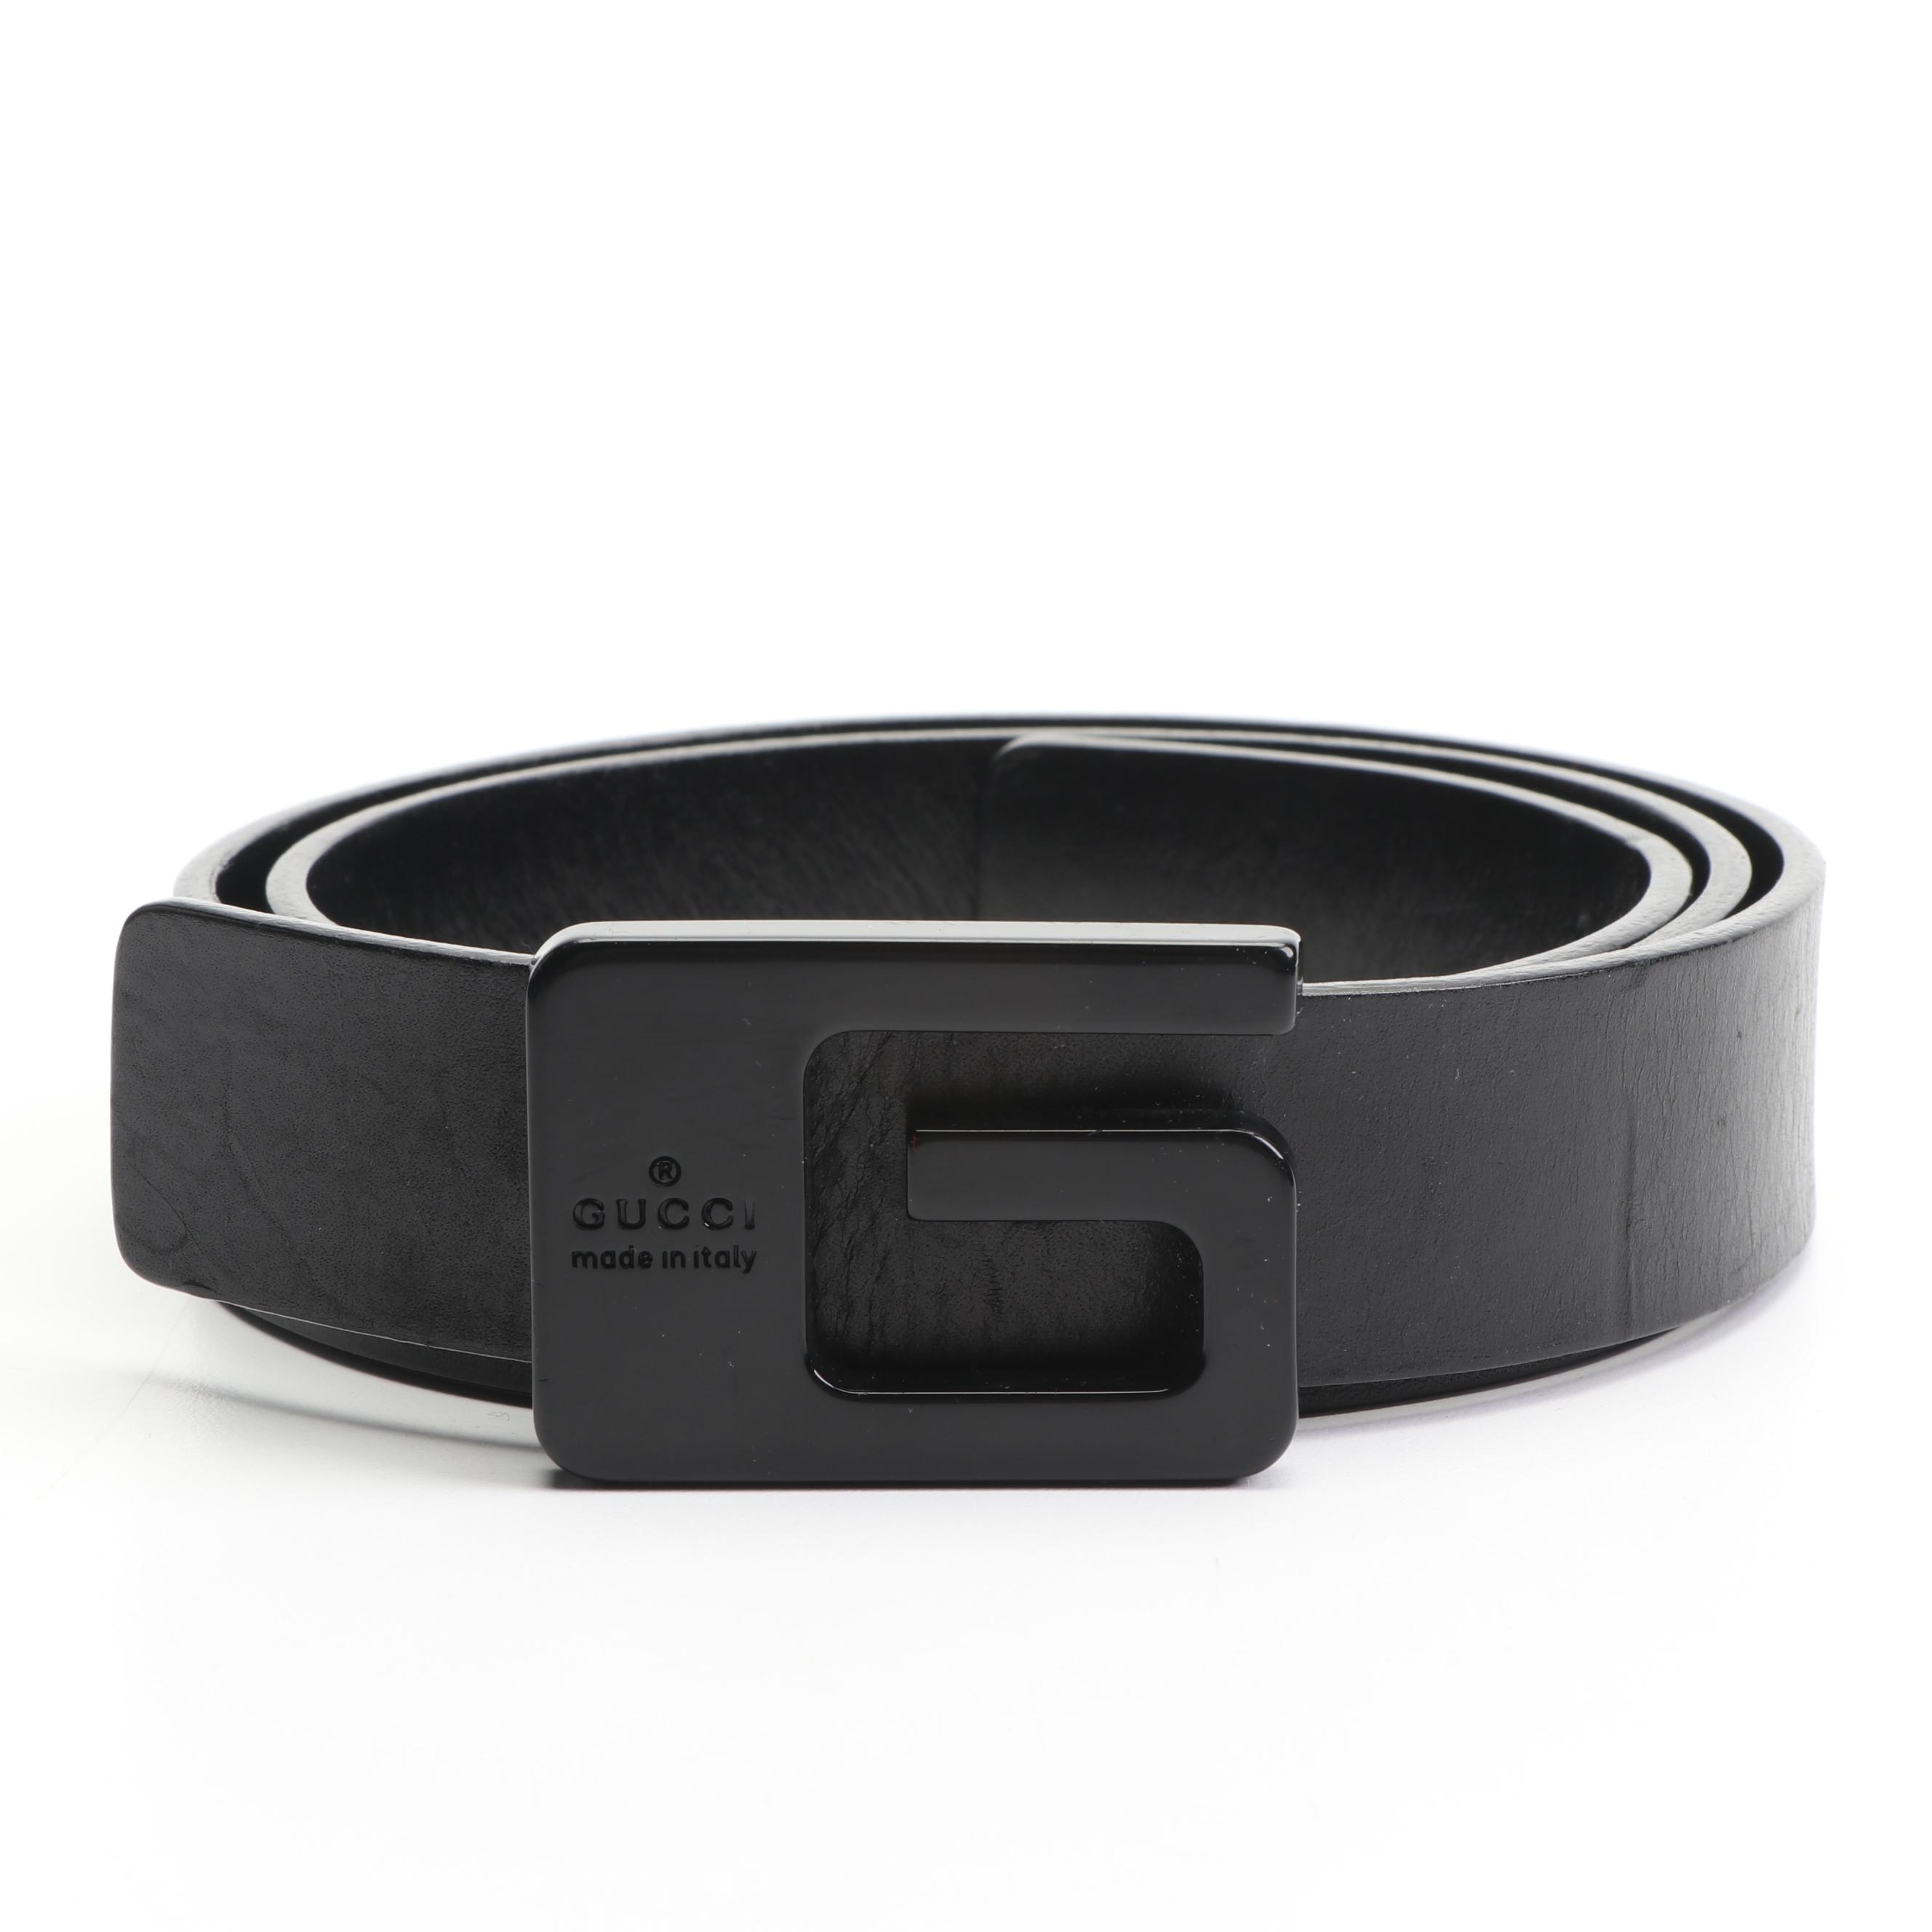 Gucci Black Leather Belt, Made in Italy